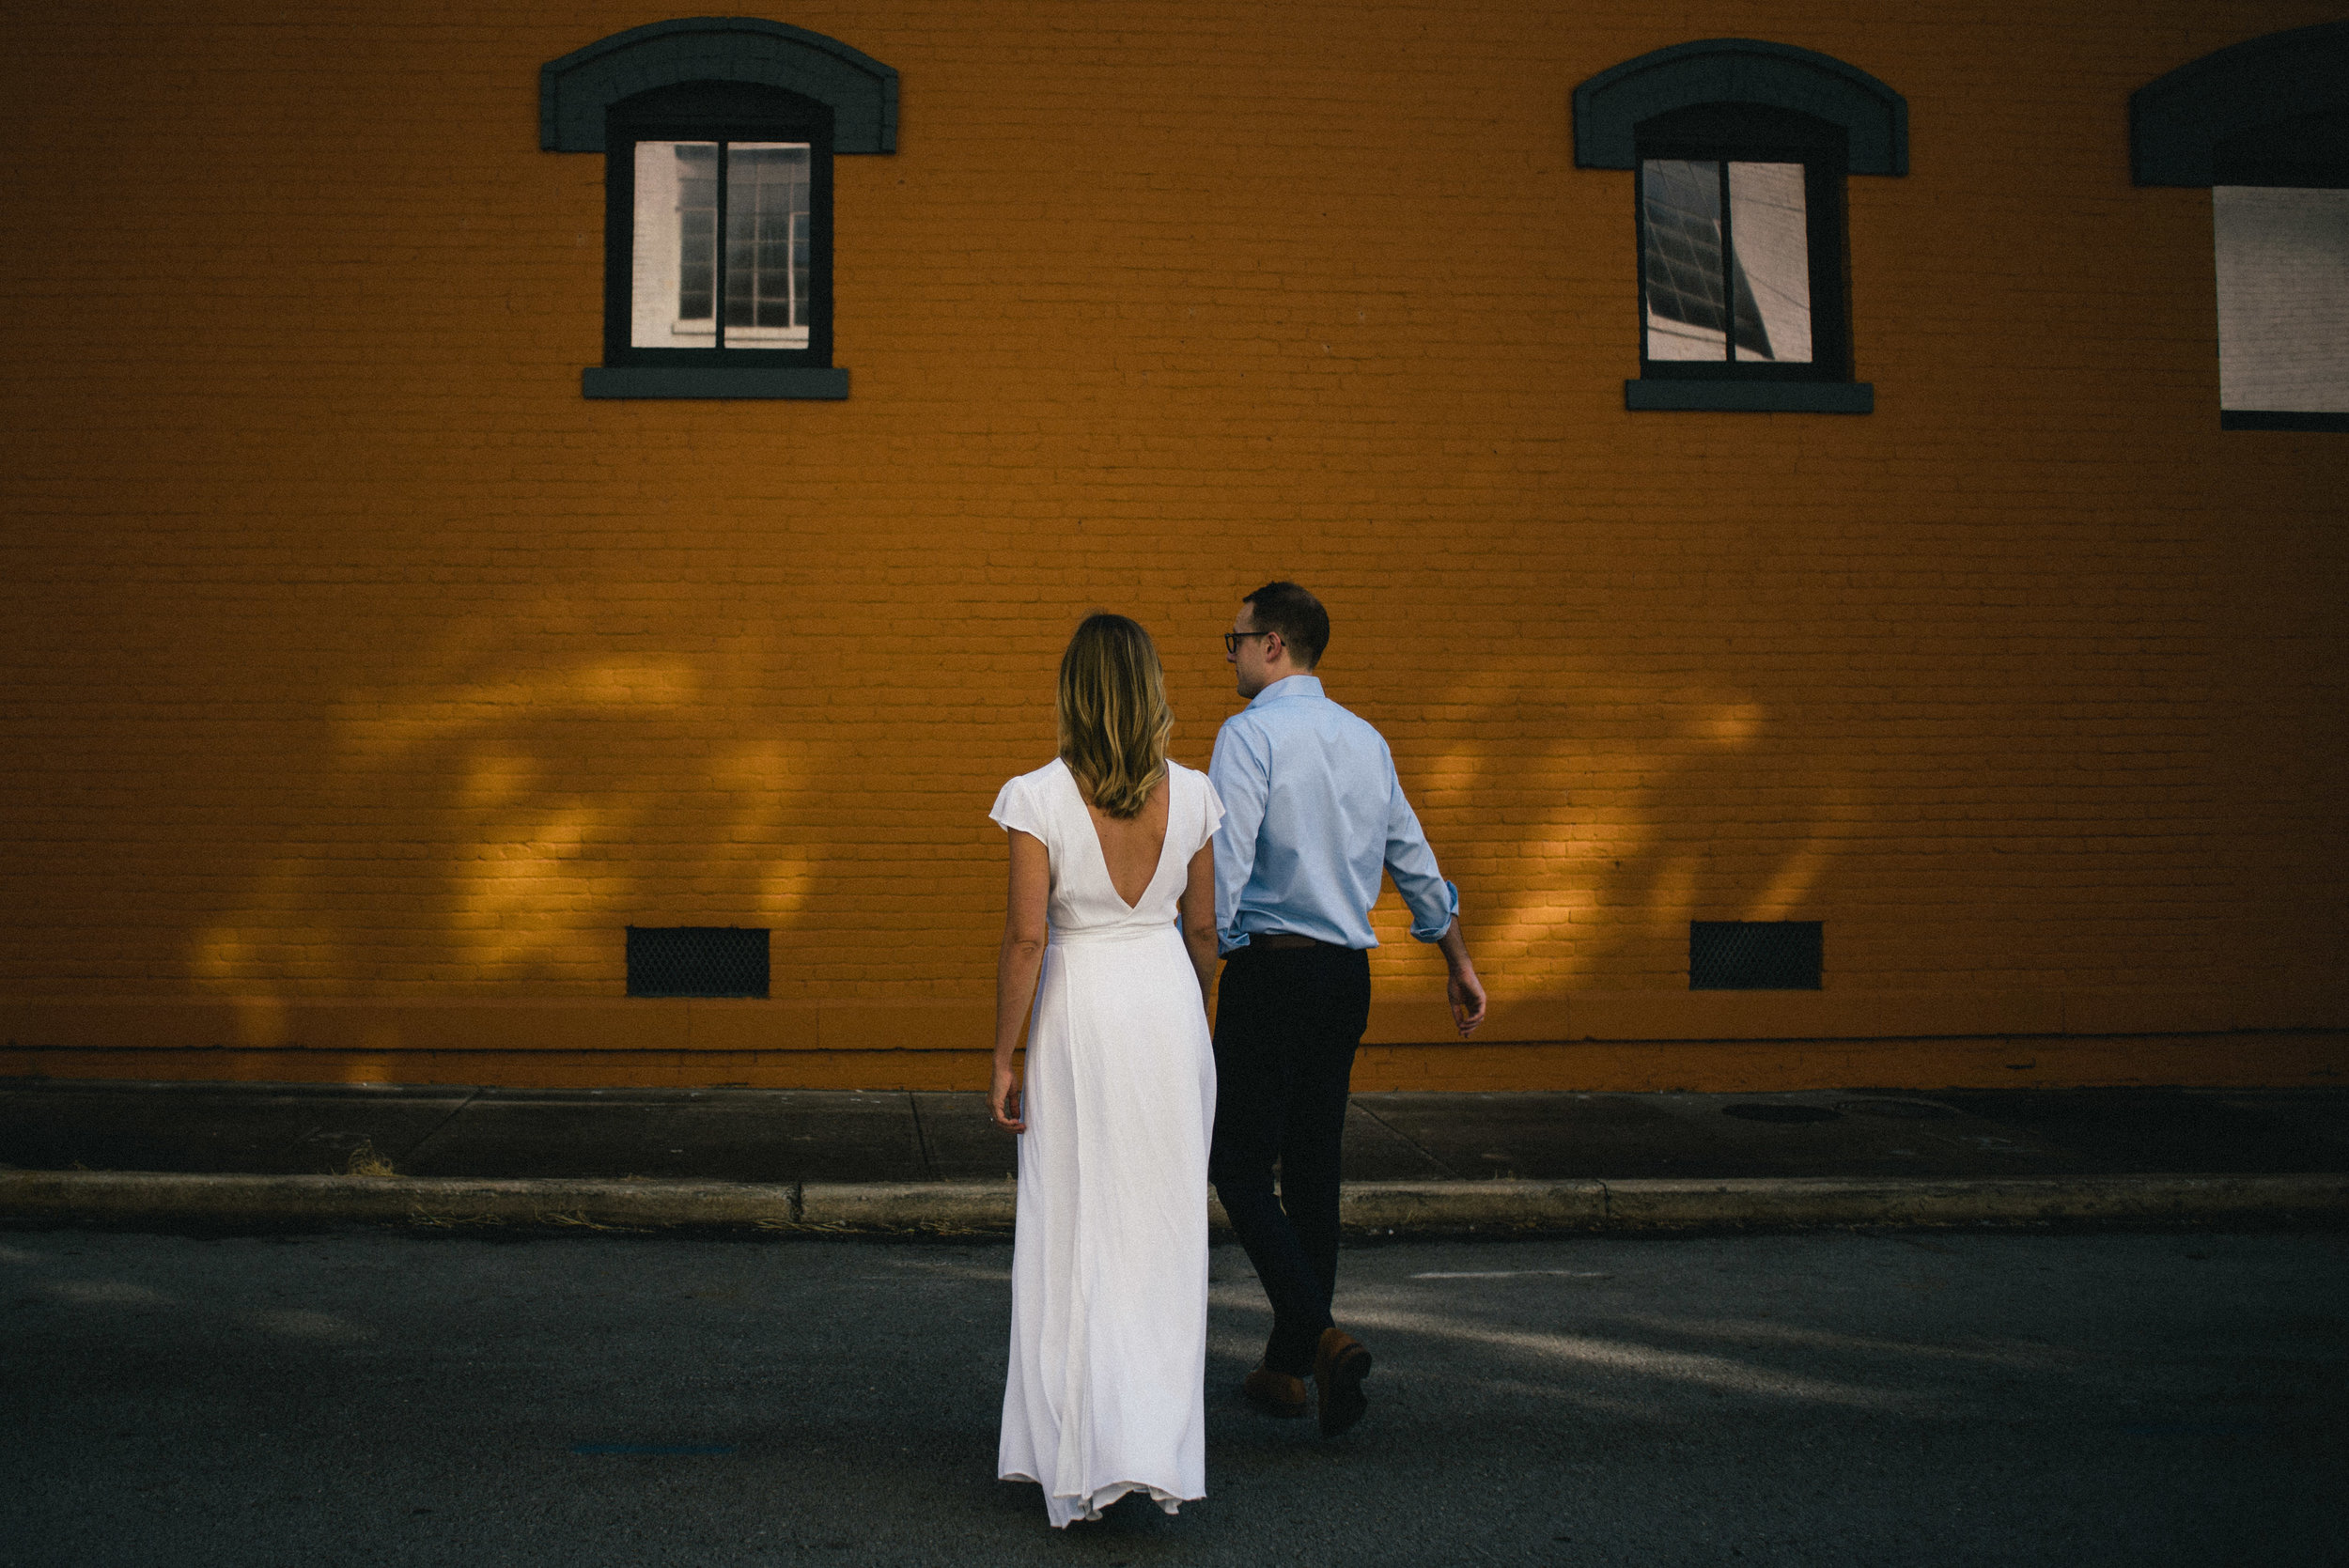 taryn-and-jackson-engagement-save-the-date (39 of 219).jpg